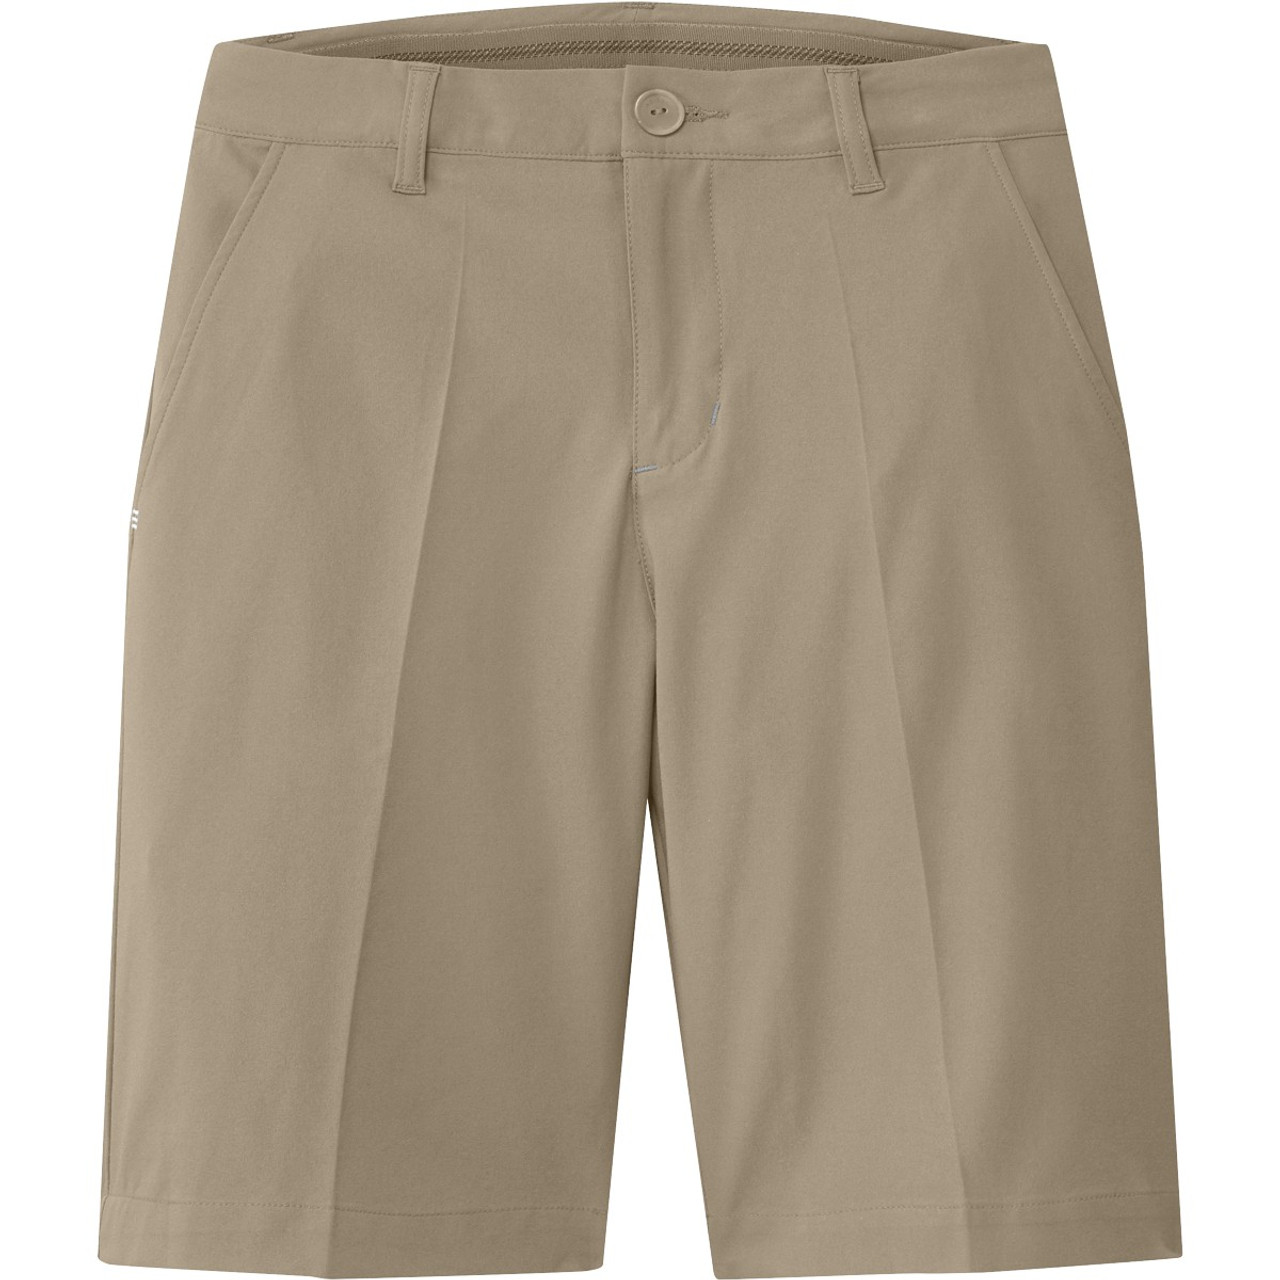 Adidas Boys Solid Shorts - Raw Gold